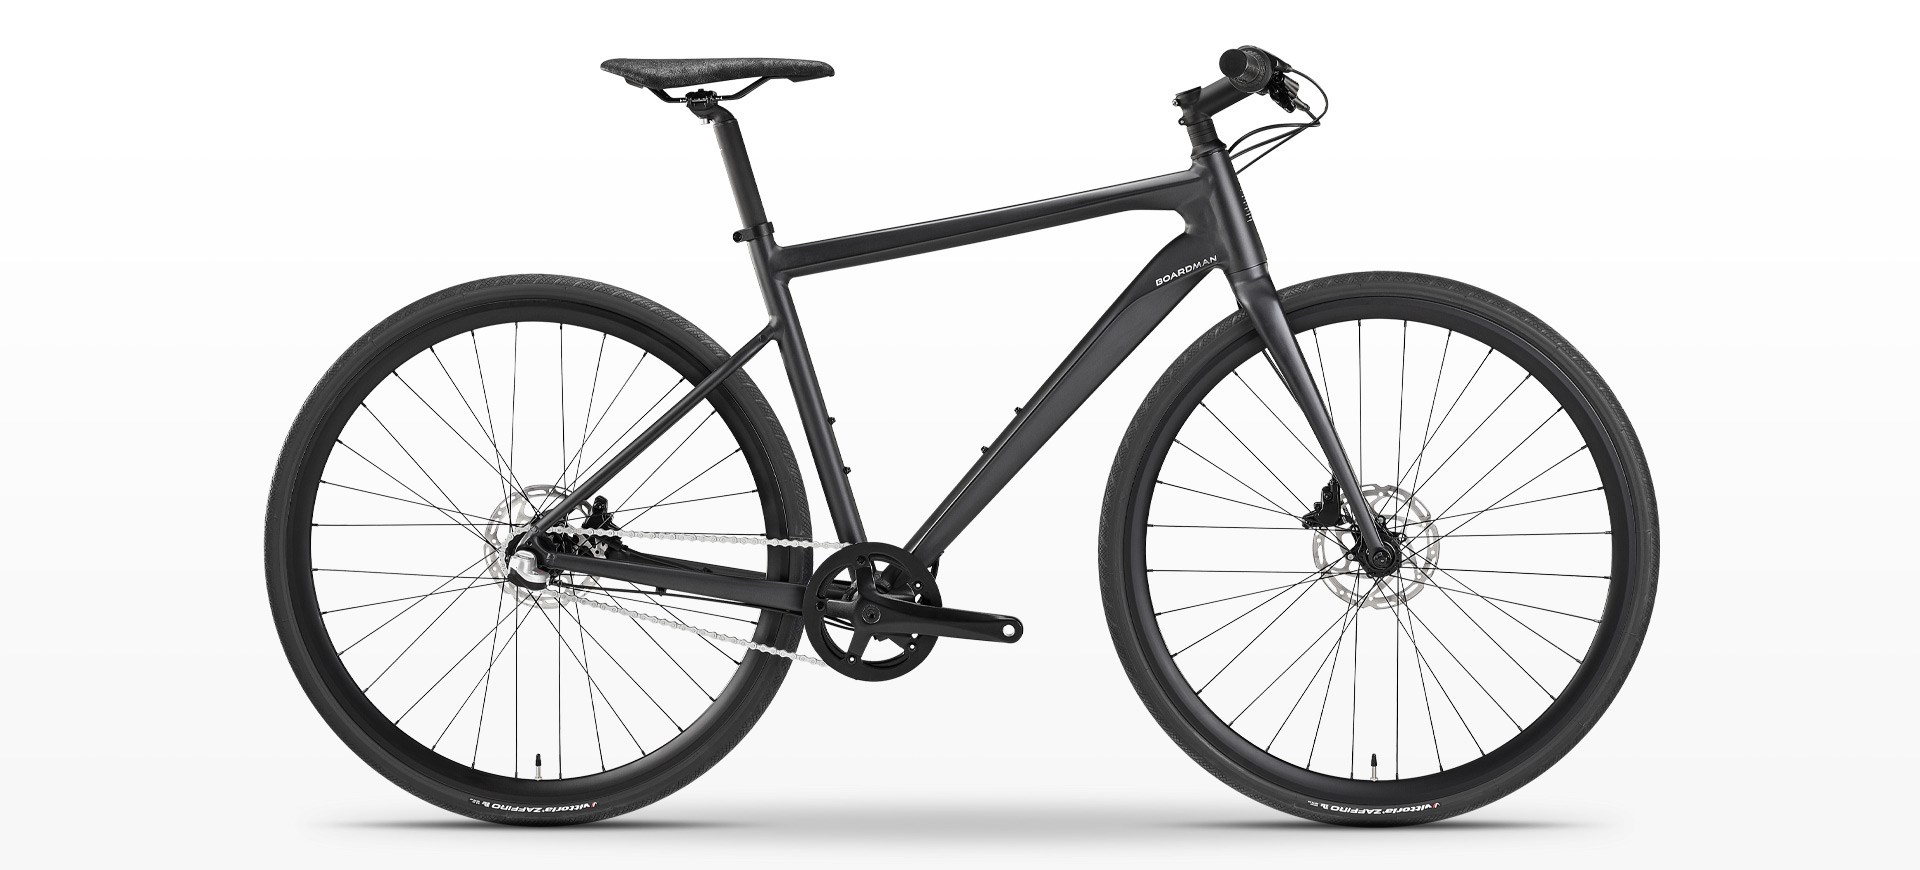 Boardman Urban Commute URB 8.6 Bike in gunmetal black